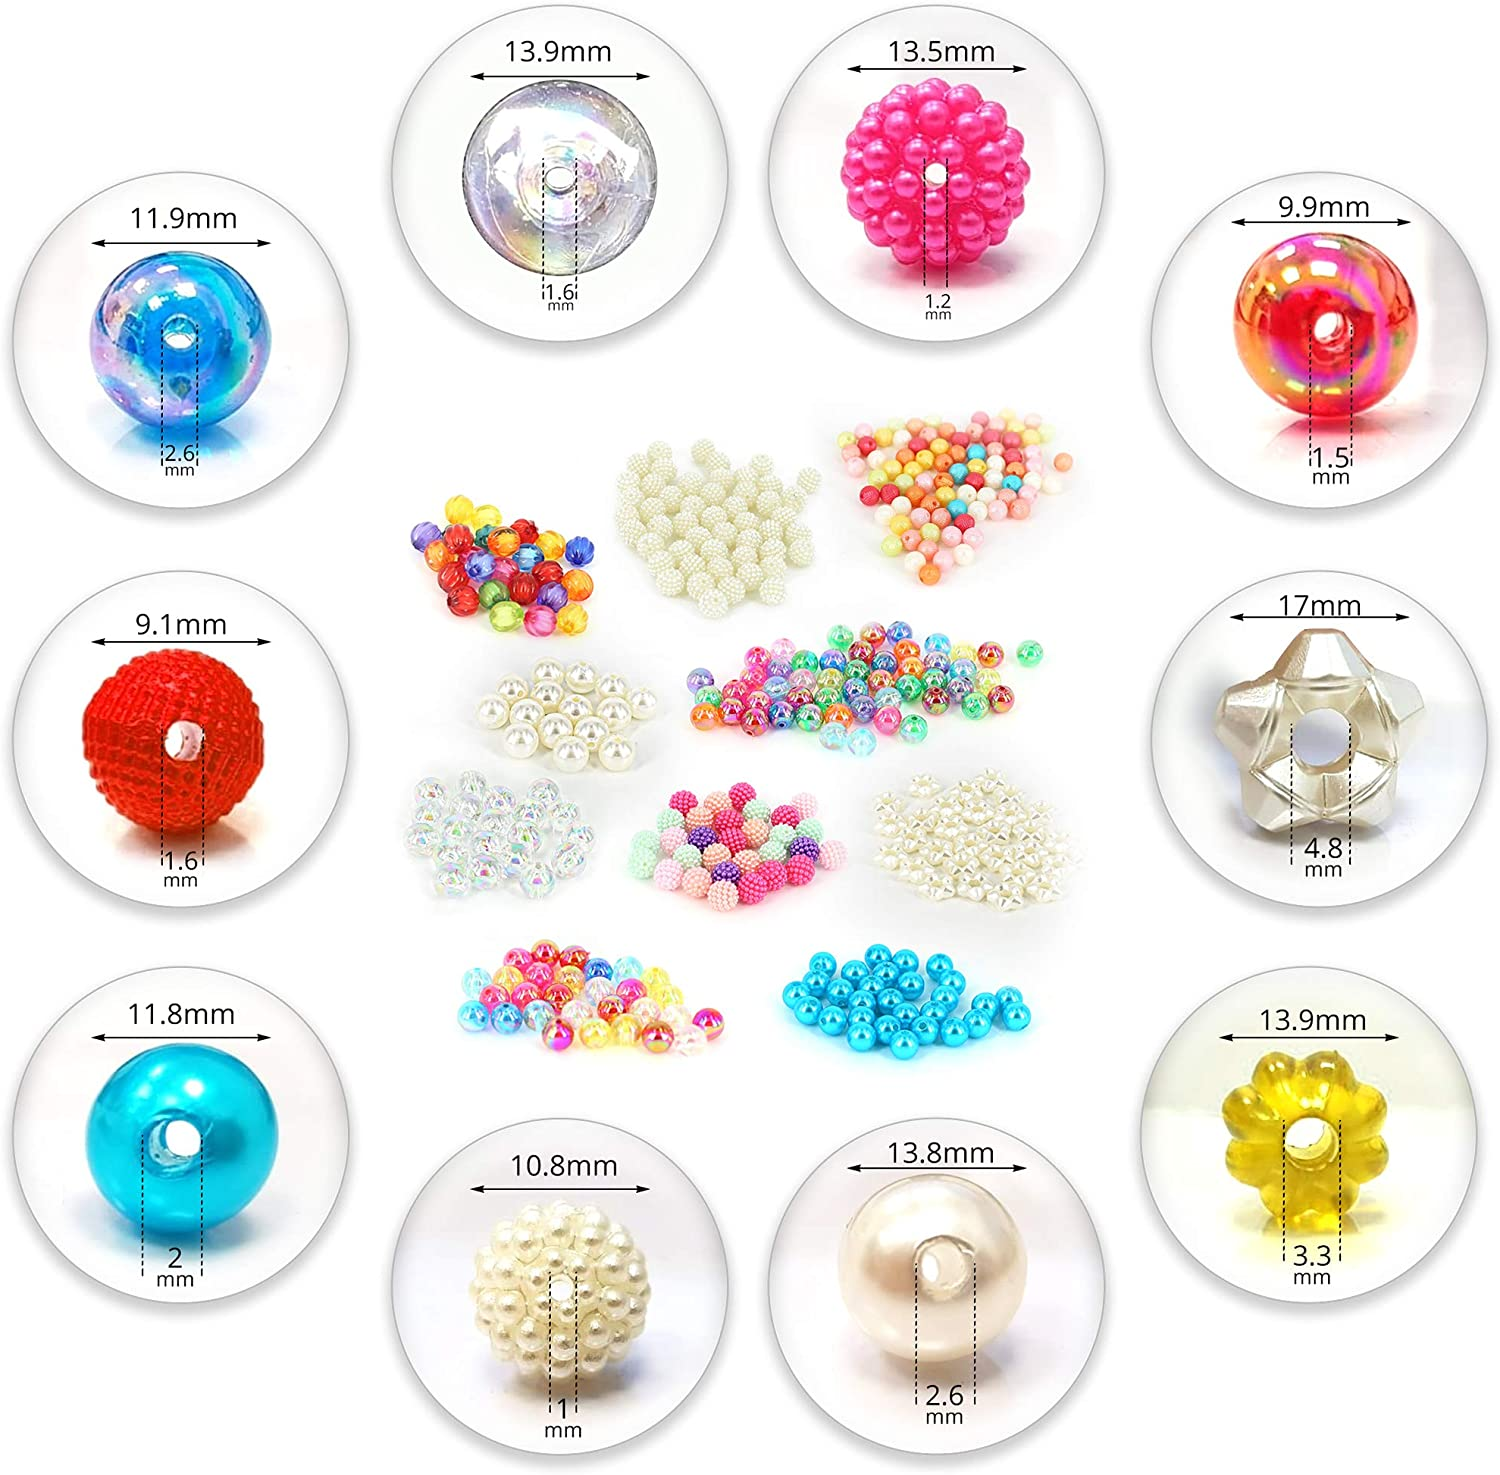 Adults and Kids Jewelry Making Kit PICKME 360pc Assorted Beads for Bracelets Set Best Creative Gift Idea Girls Crafts Ages 8-12 DIY Bracelet Making Kit for Girls with 10 Plastic Beads Designs